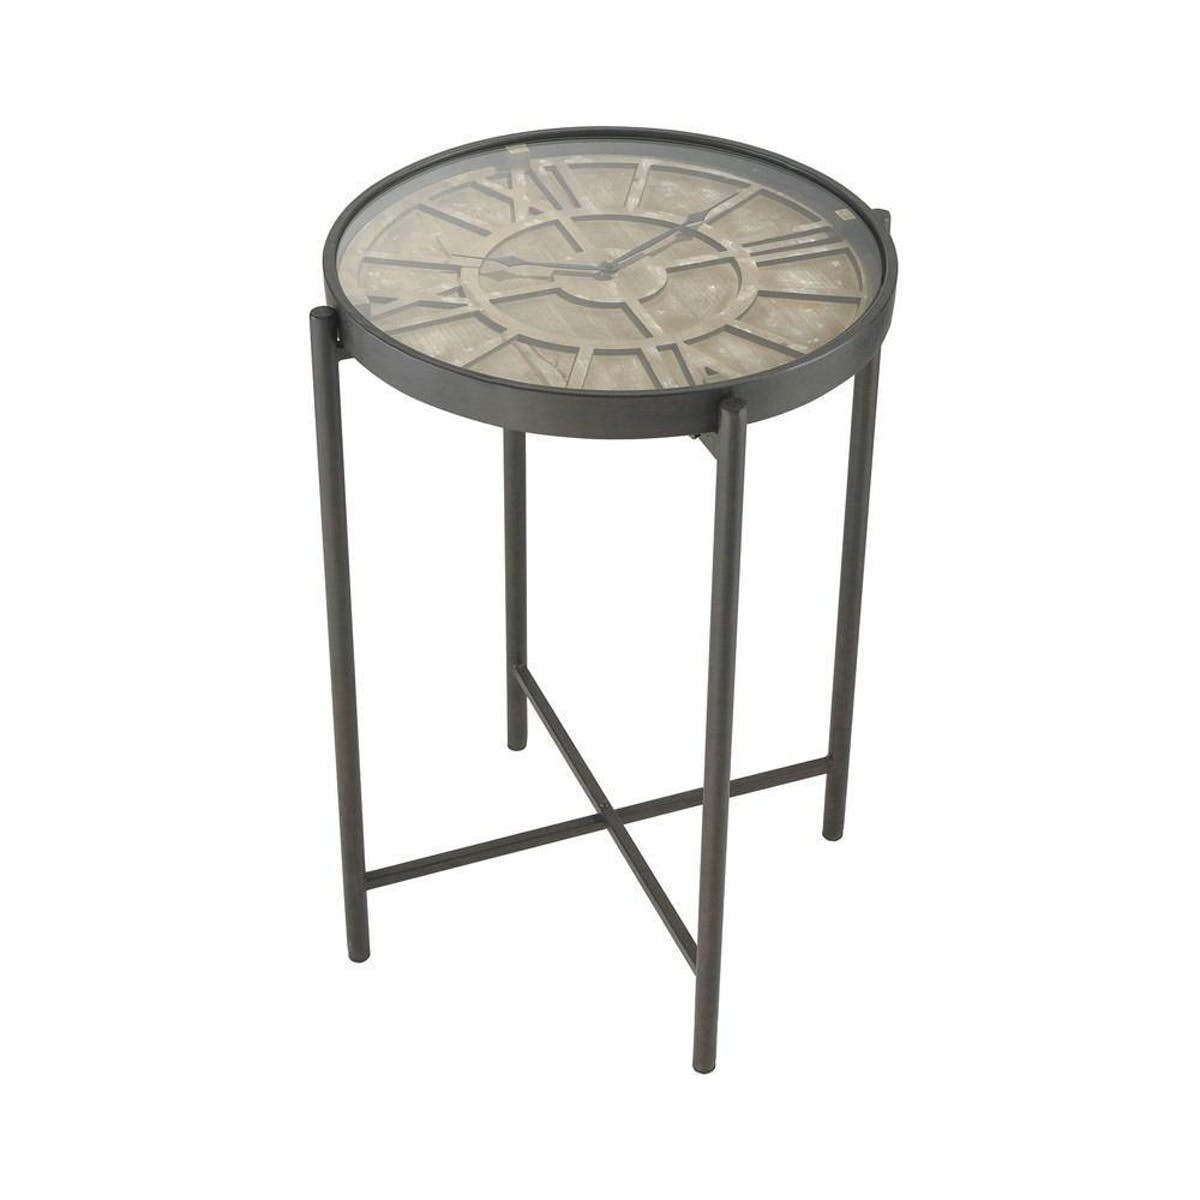 sterling industries marylebone bronze with wood accent table tap expand rustic pine furniture round coffee legs circle storage kids corner desk cement ikea units maritime light